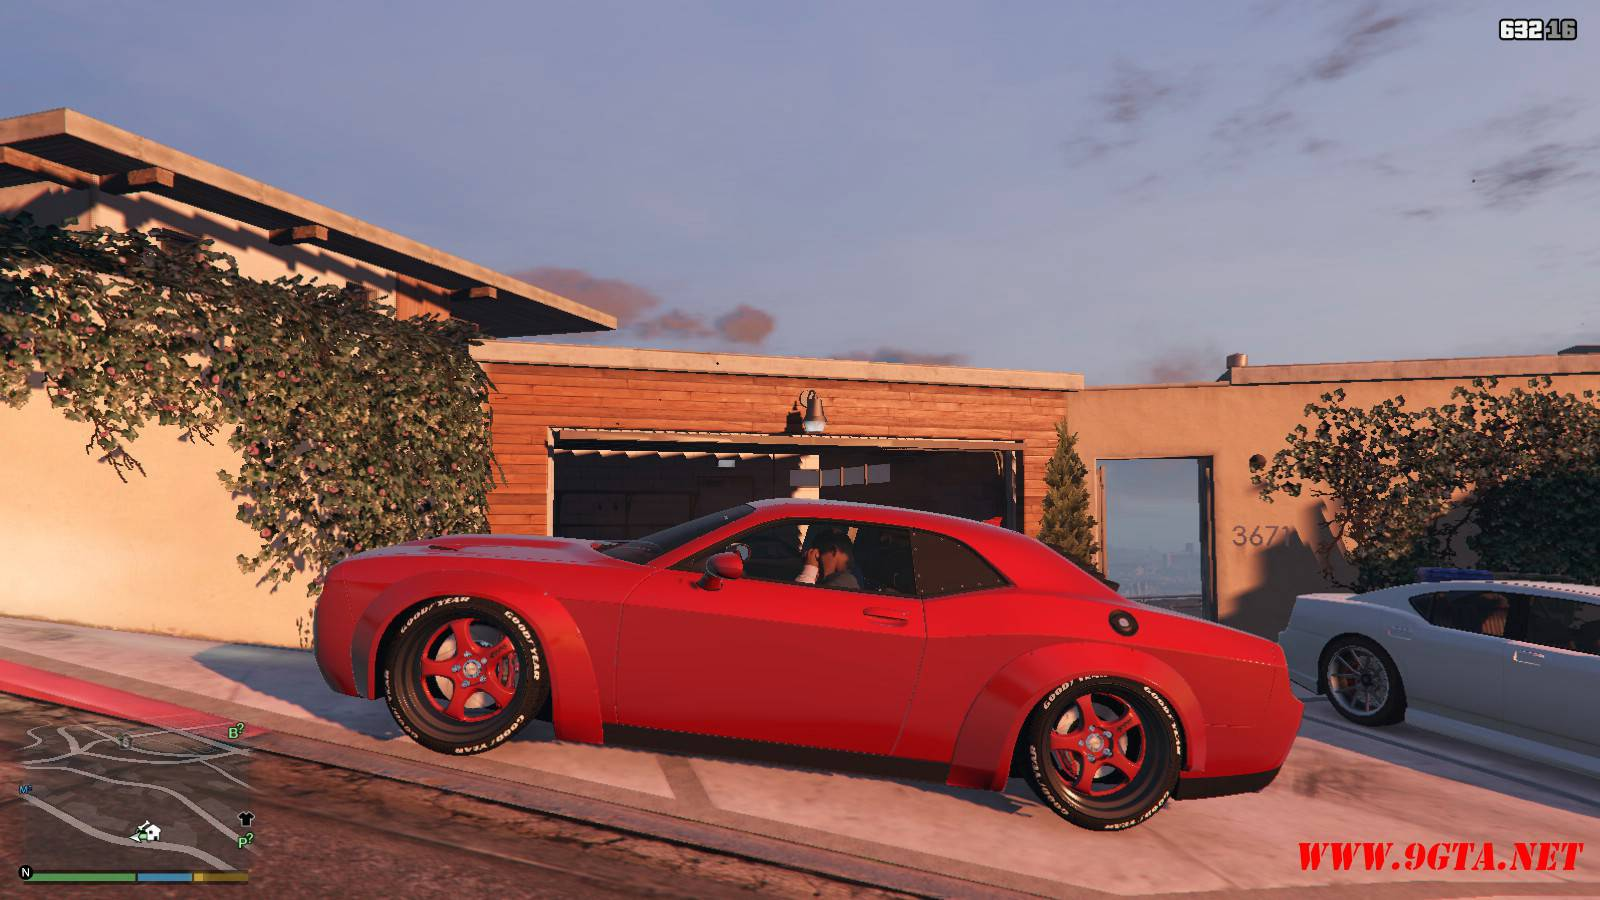 2018 Dodge Challenger SRT Demon v1.4 Mod For GTA5 (3)